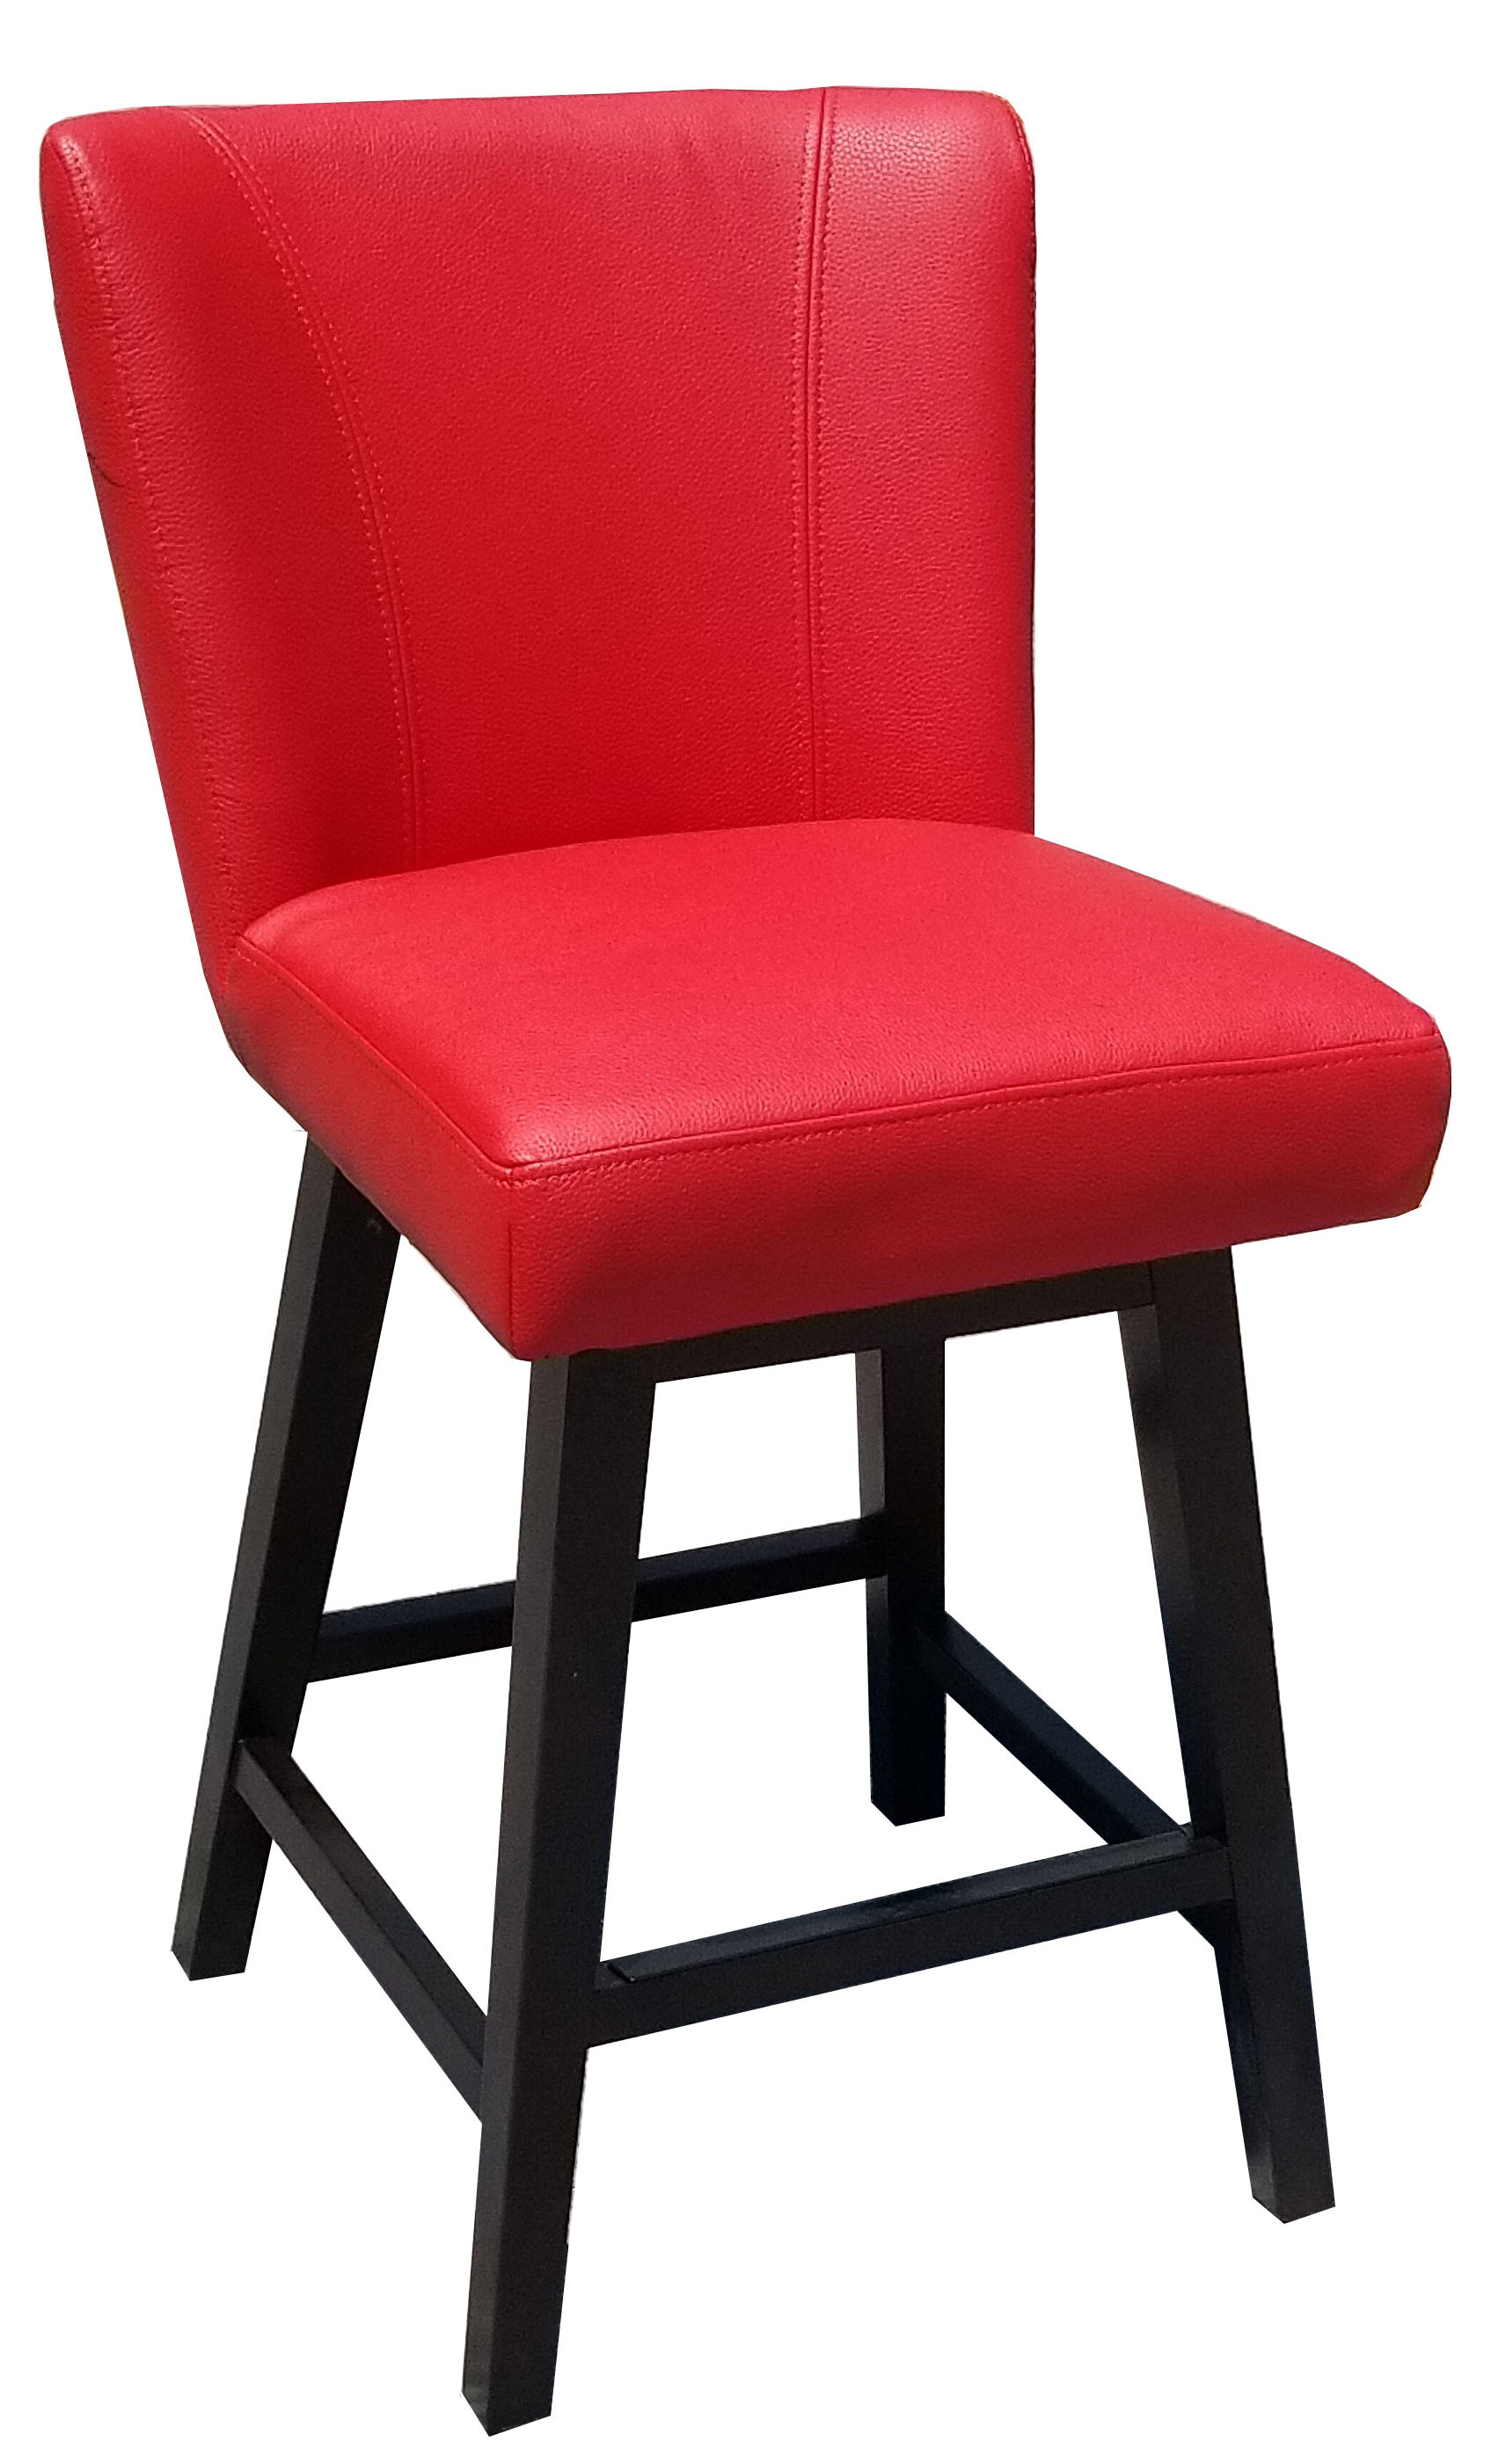 Restaurant Chairs Stools Amp Booths On Sale R 1223